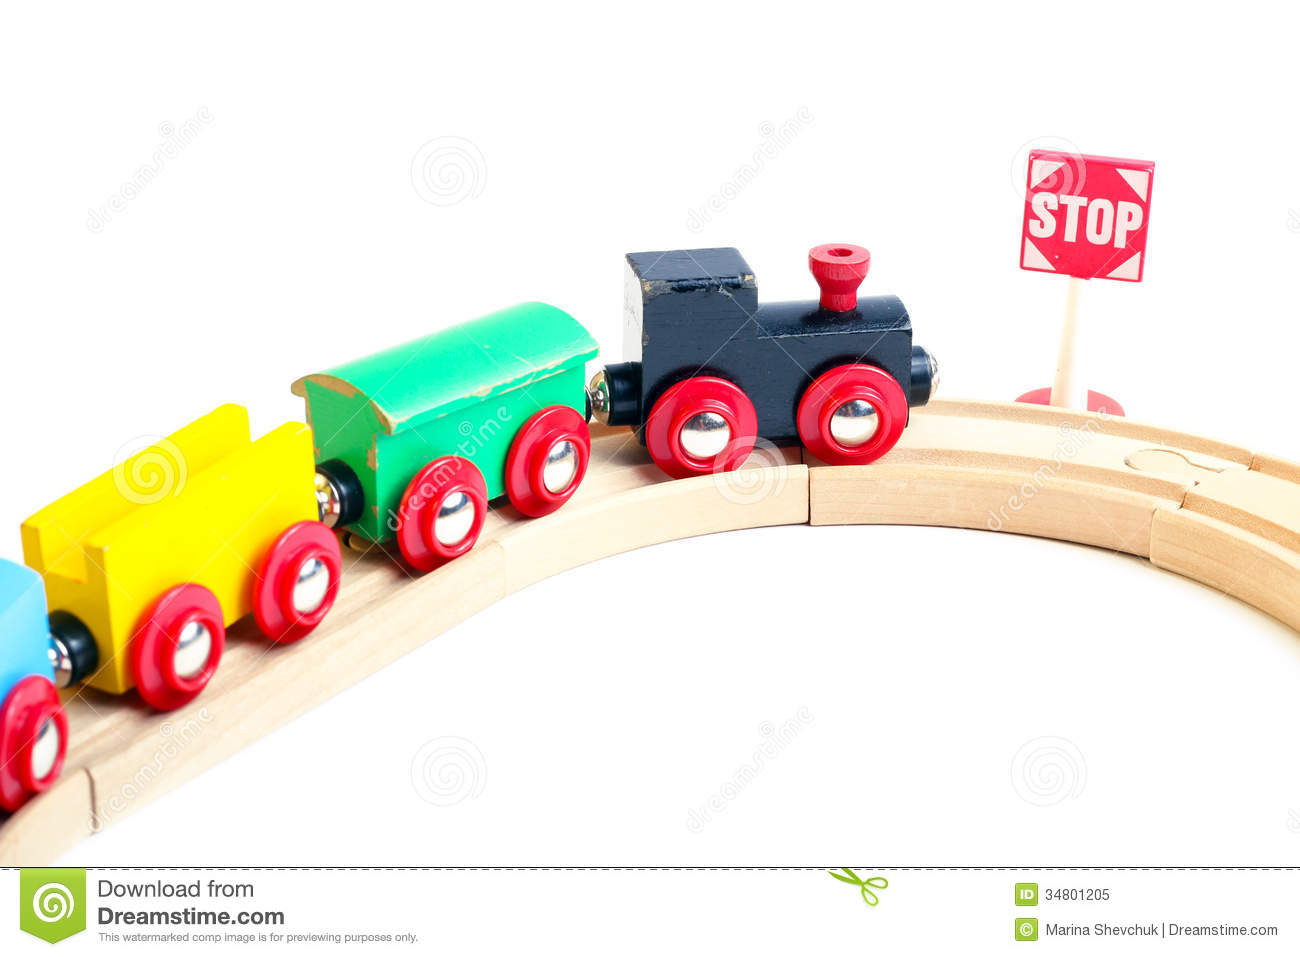 Wooden toy train on white background, selective focus.